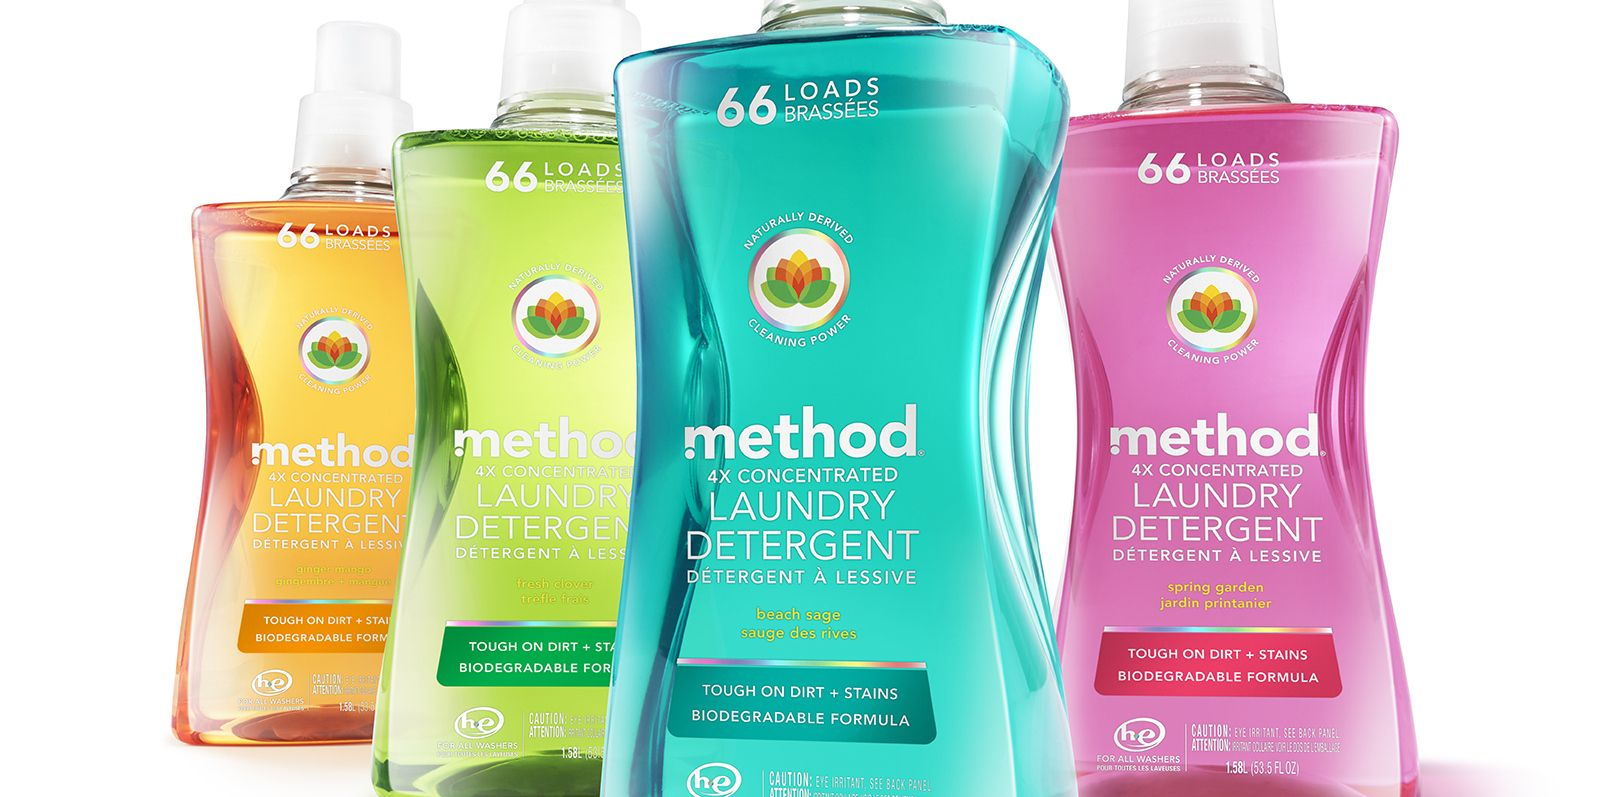 Method Liquid Laundry Detergent 53-Ounce PET Post-Consumer Recycled Bottle - 2016 Diamond Finalist Award - DuPont Awards for Packaging Innovation.